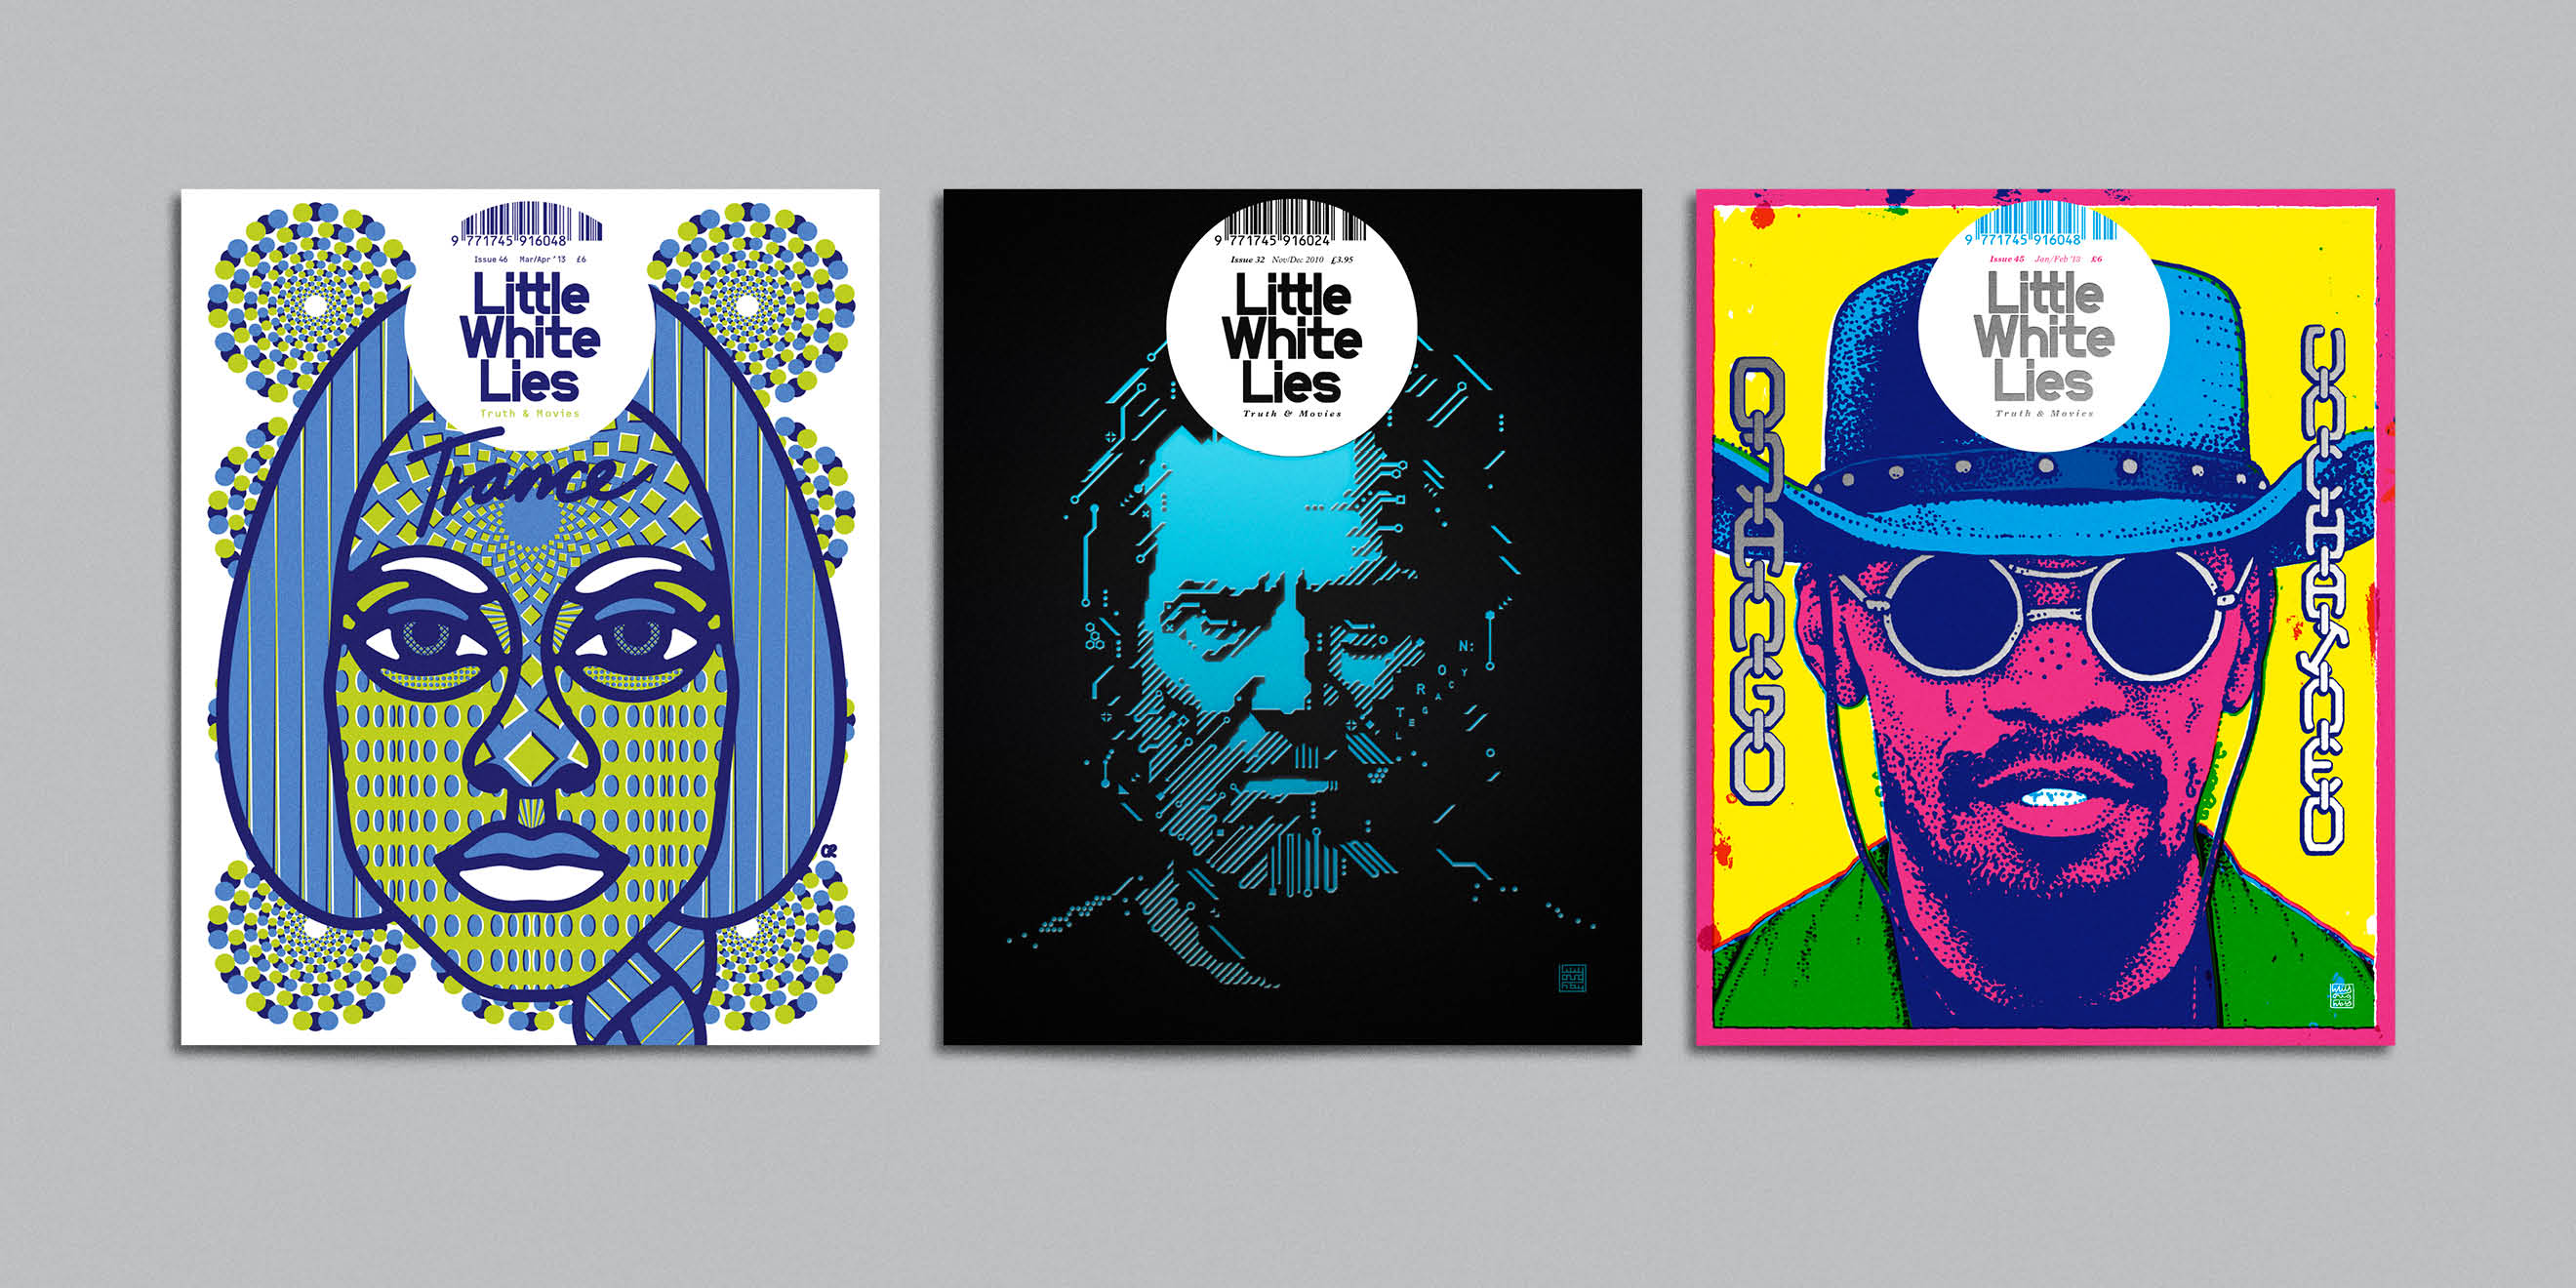 Little White Lies movie magazine illustrated covers - Trance, Tron Legacy, Django Unchained